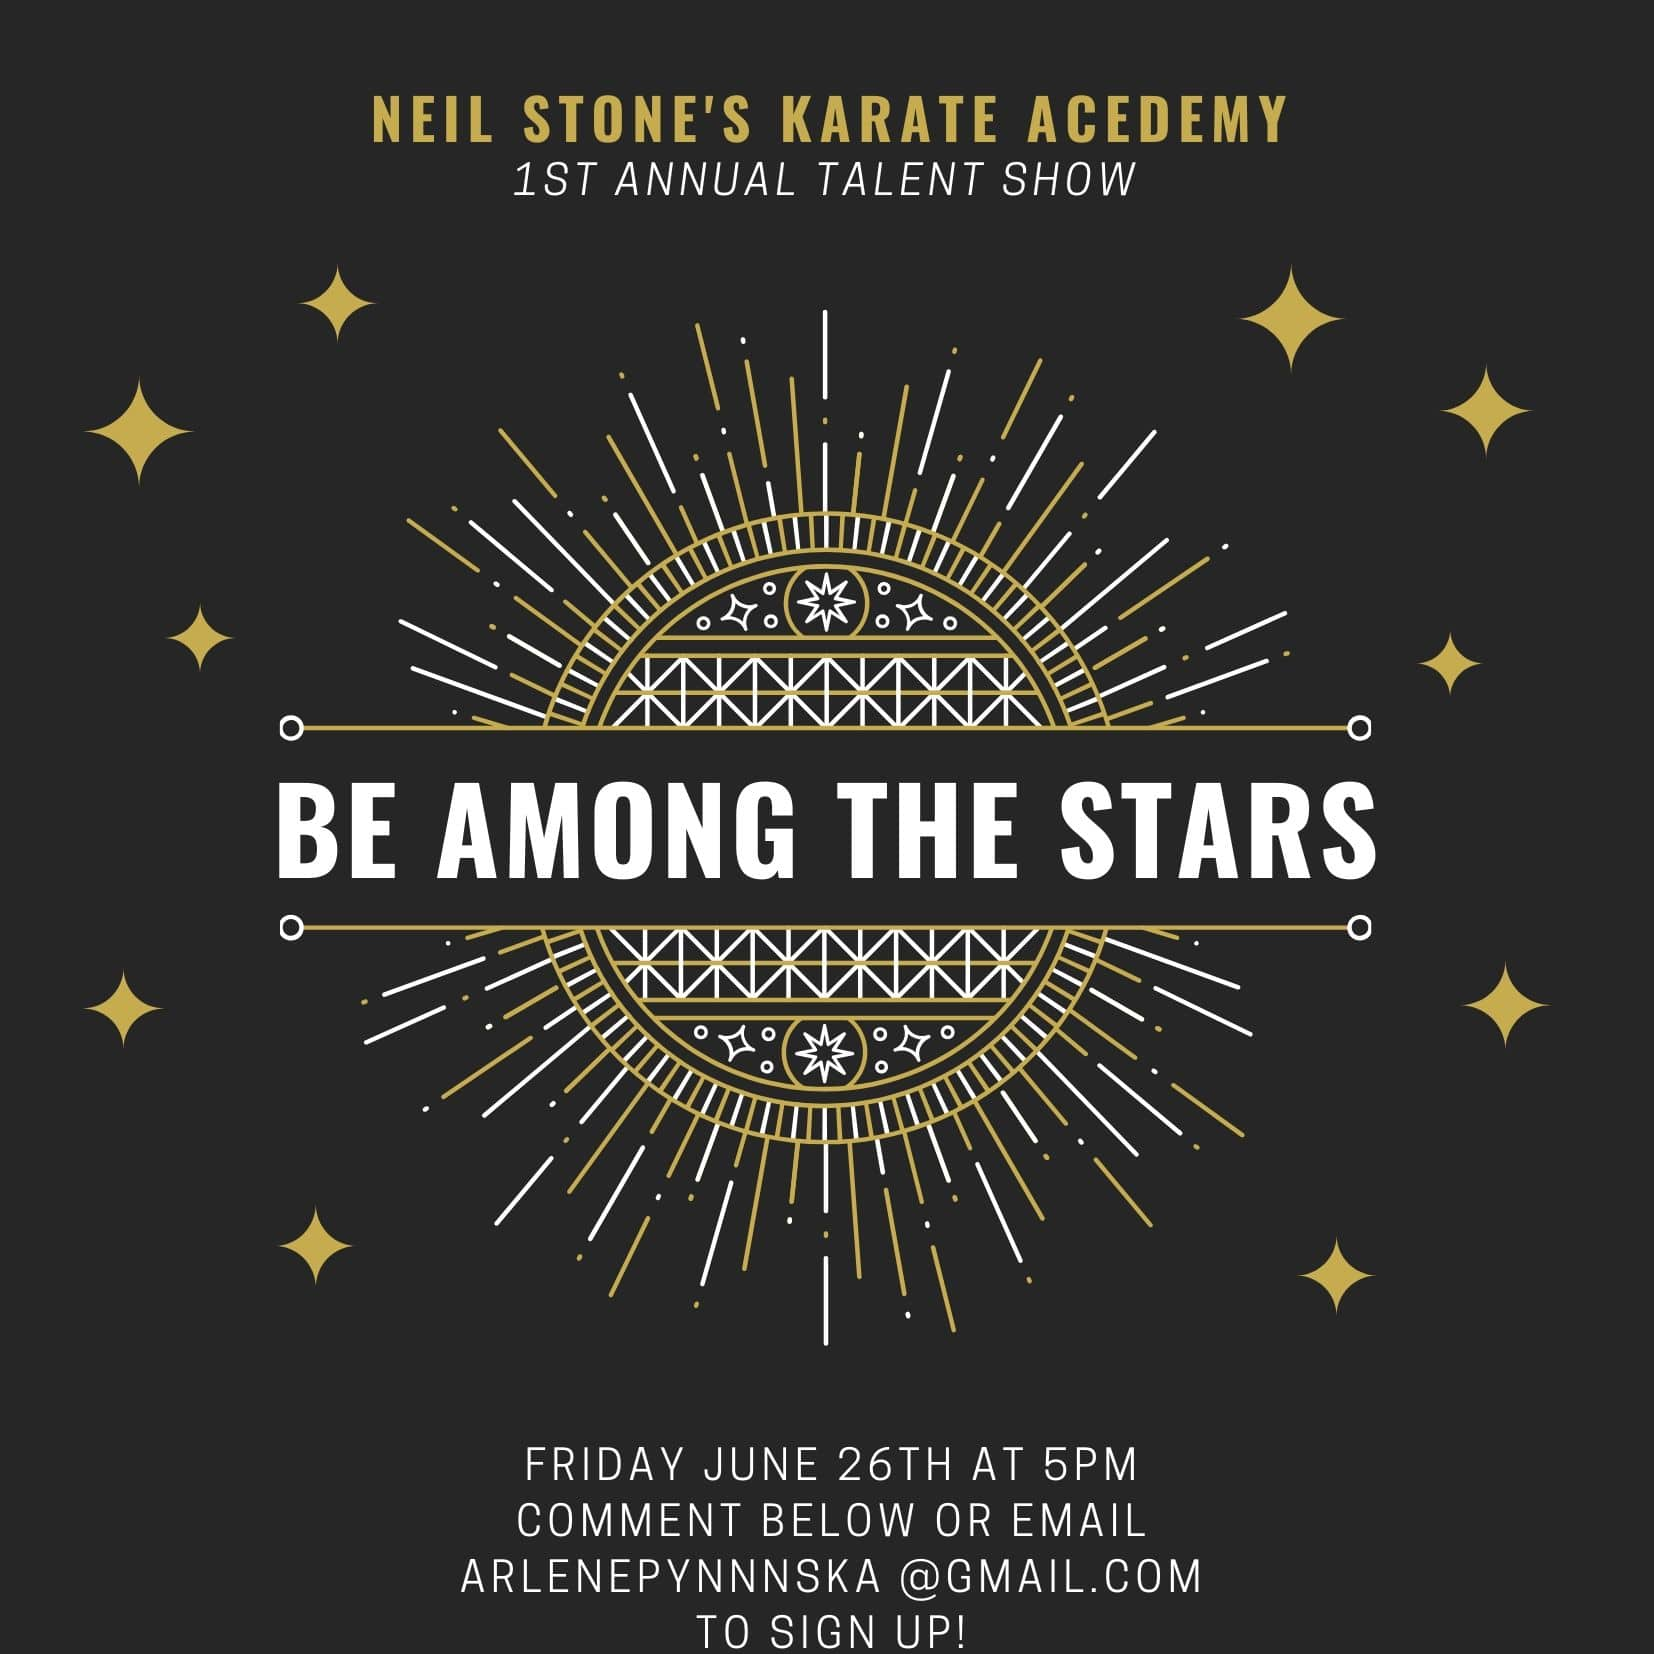 Neil Stone's Karate Academy First Annual Talent Show